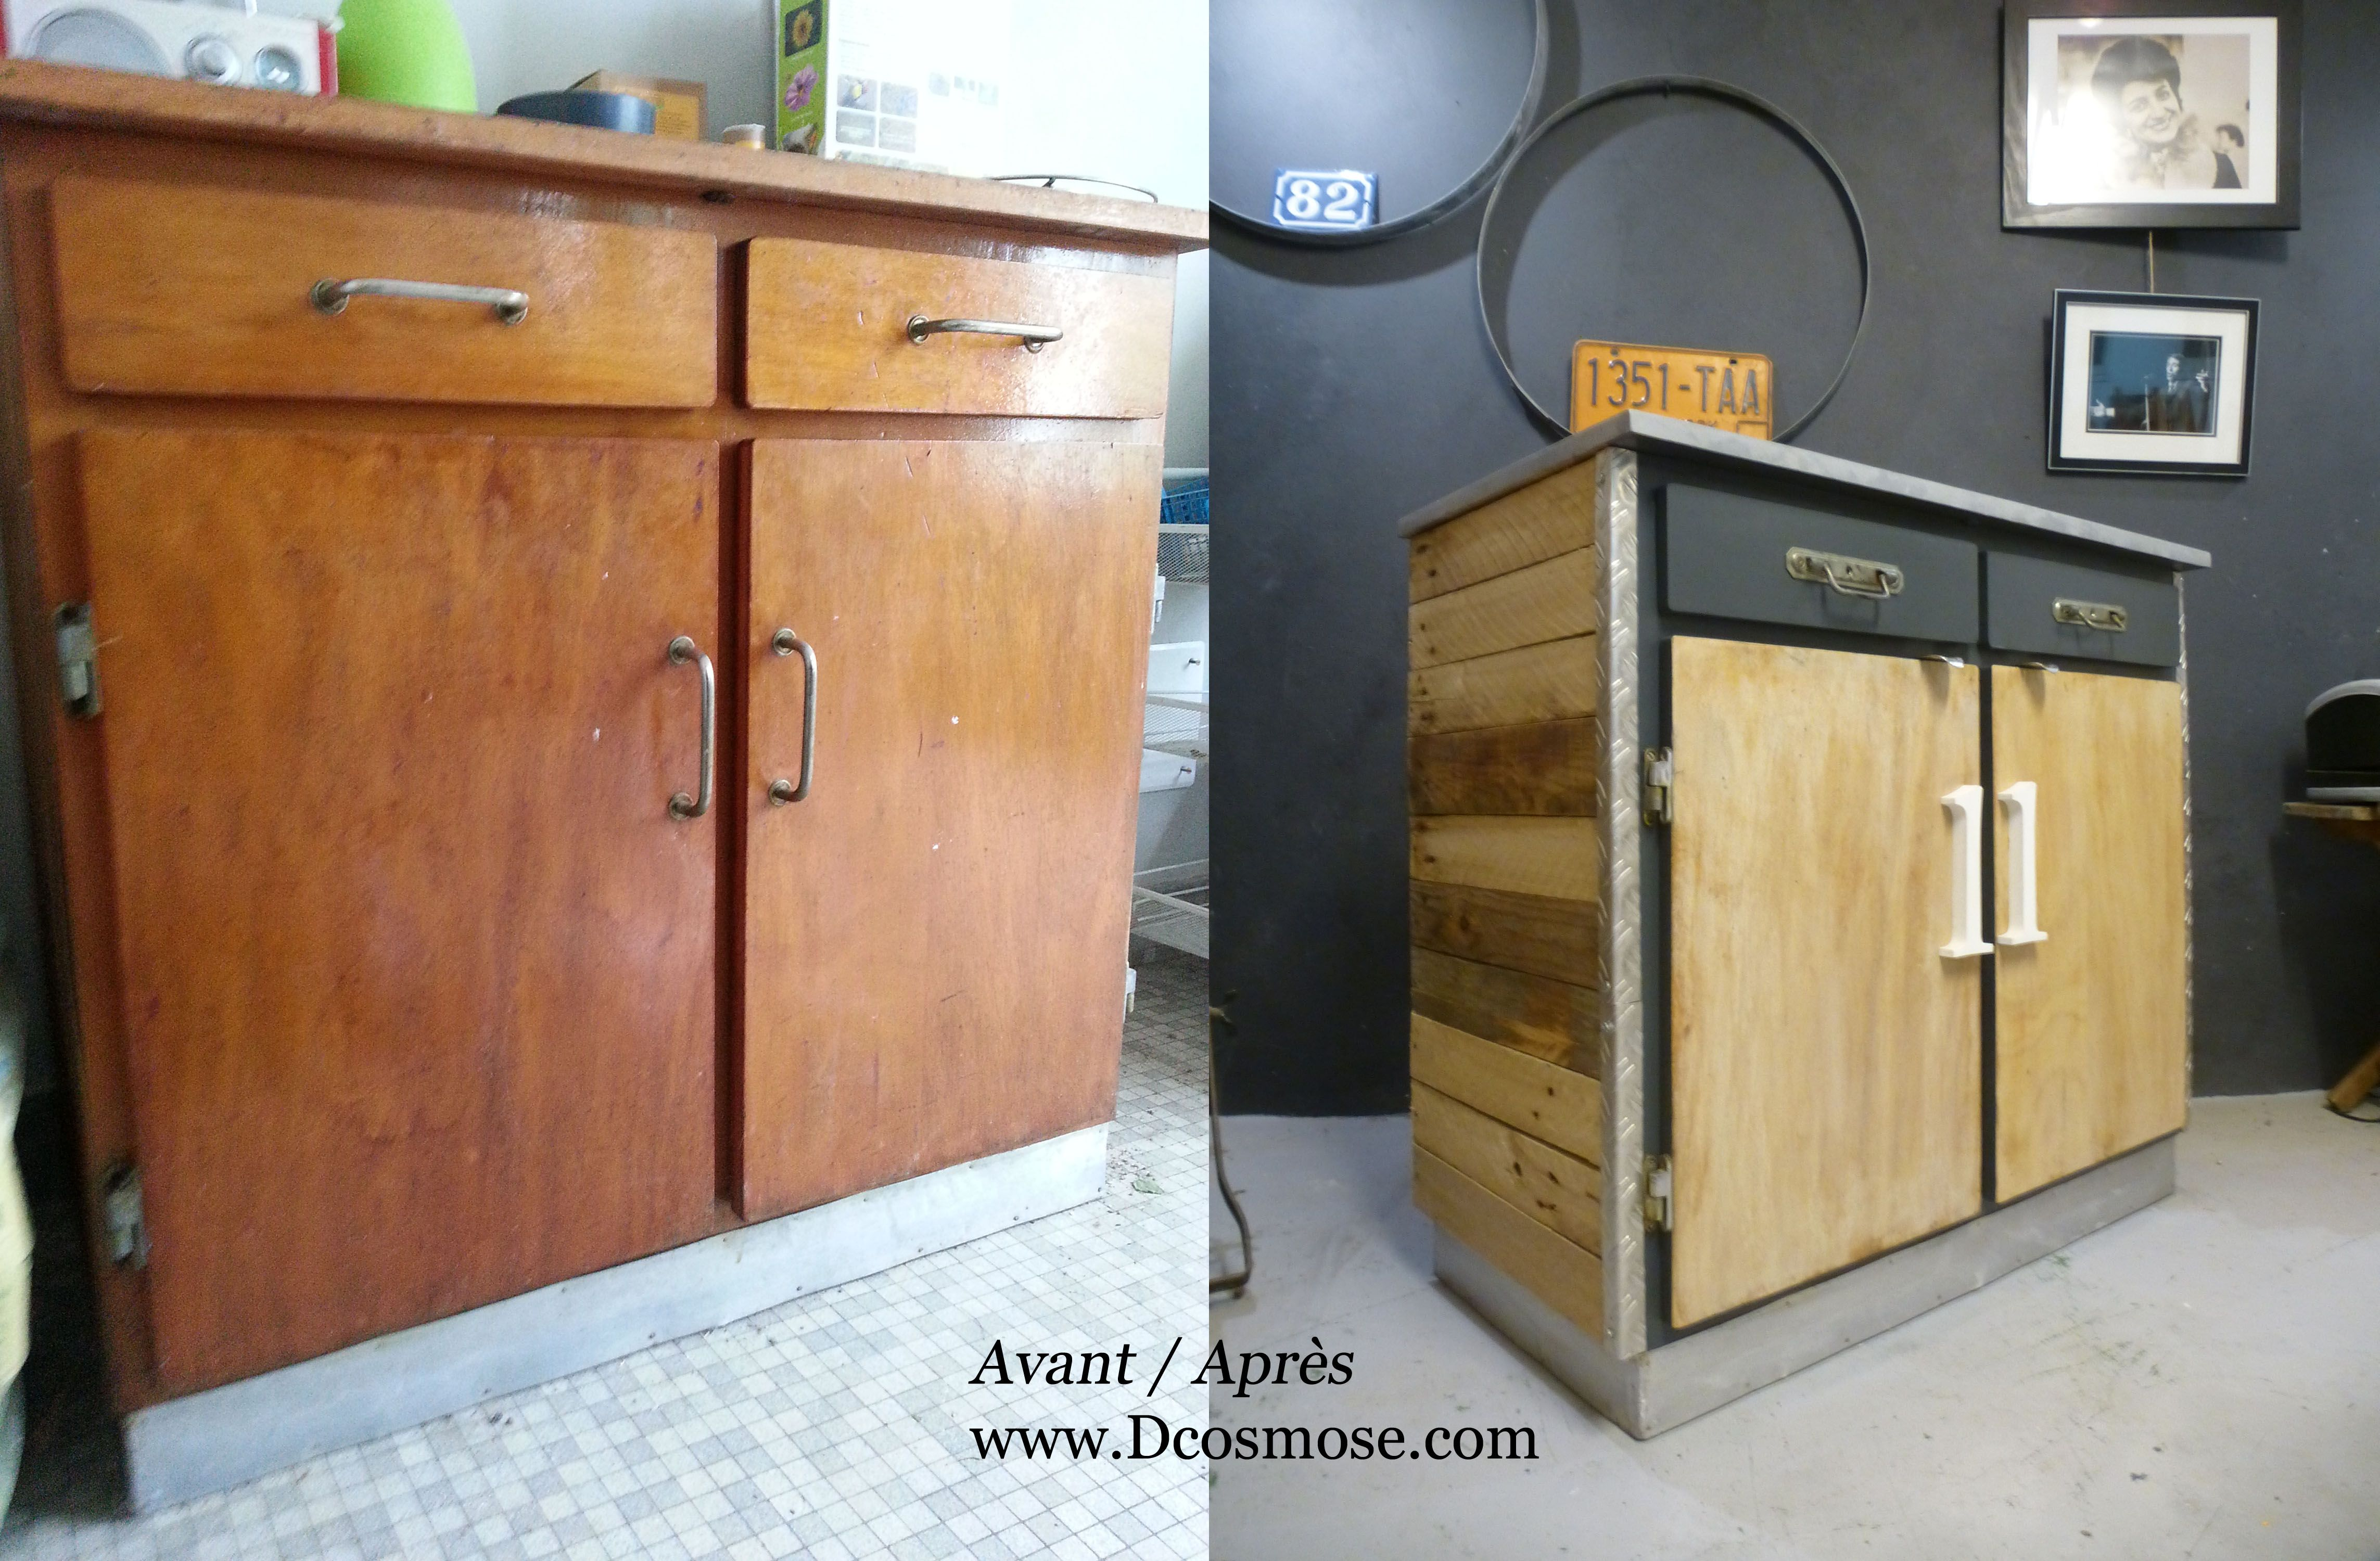 1001 Idees Pour Relooker Une Armoire Ancienne Armoire Ancienne Relooking Armoire Patiner Un Meuble